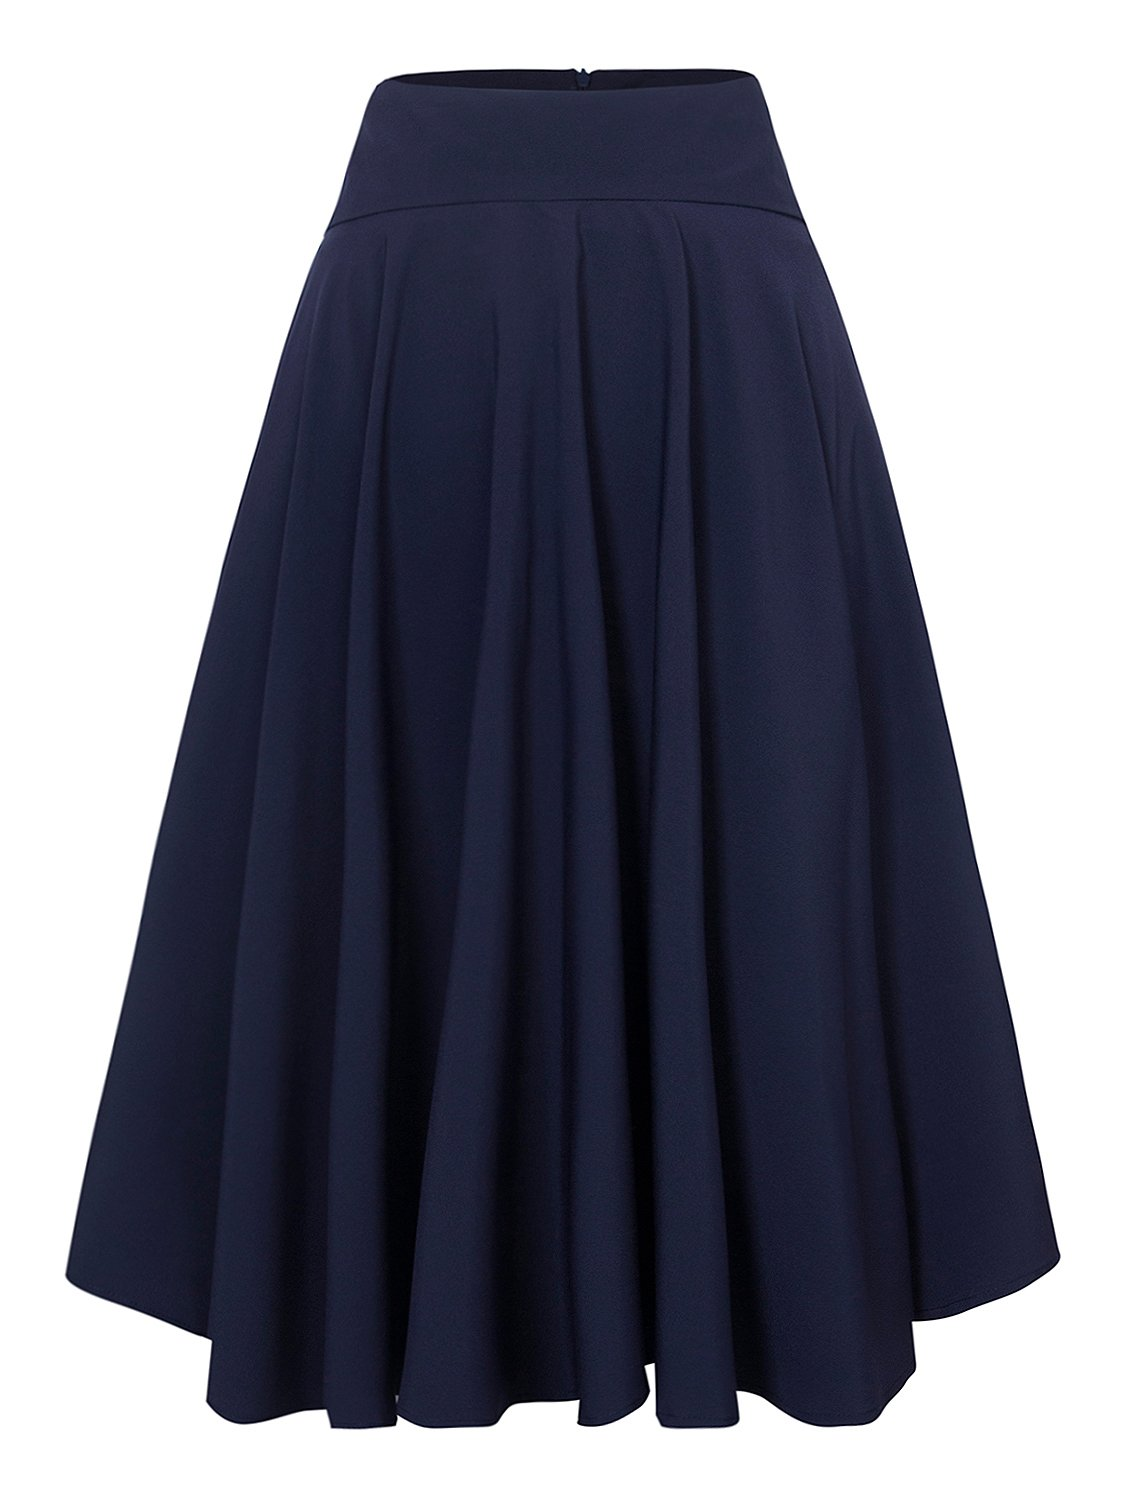 CHOiES record your inspired fashion Women Royal Blue High Waist Midi Skater Skirt L